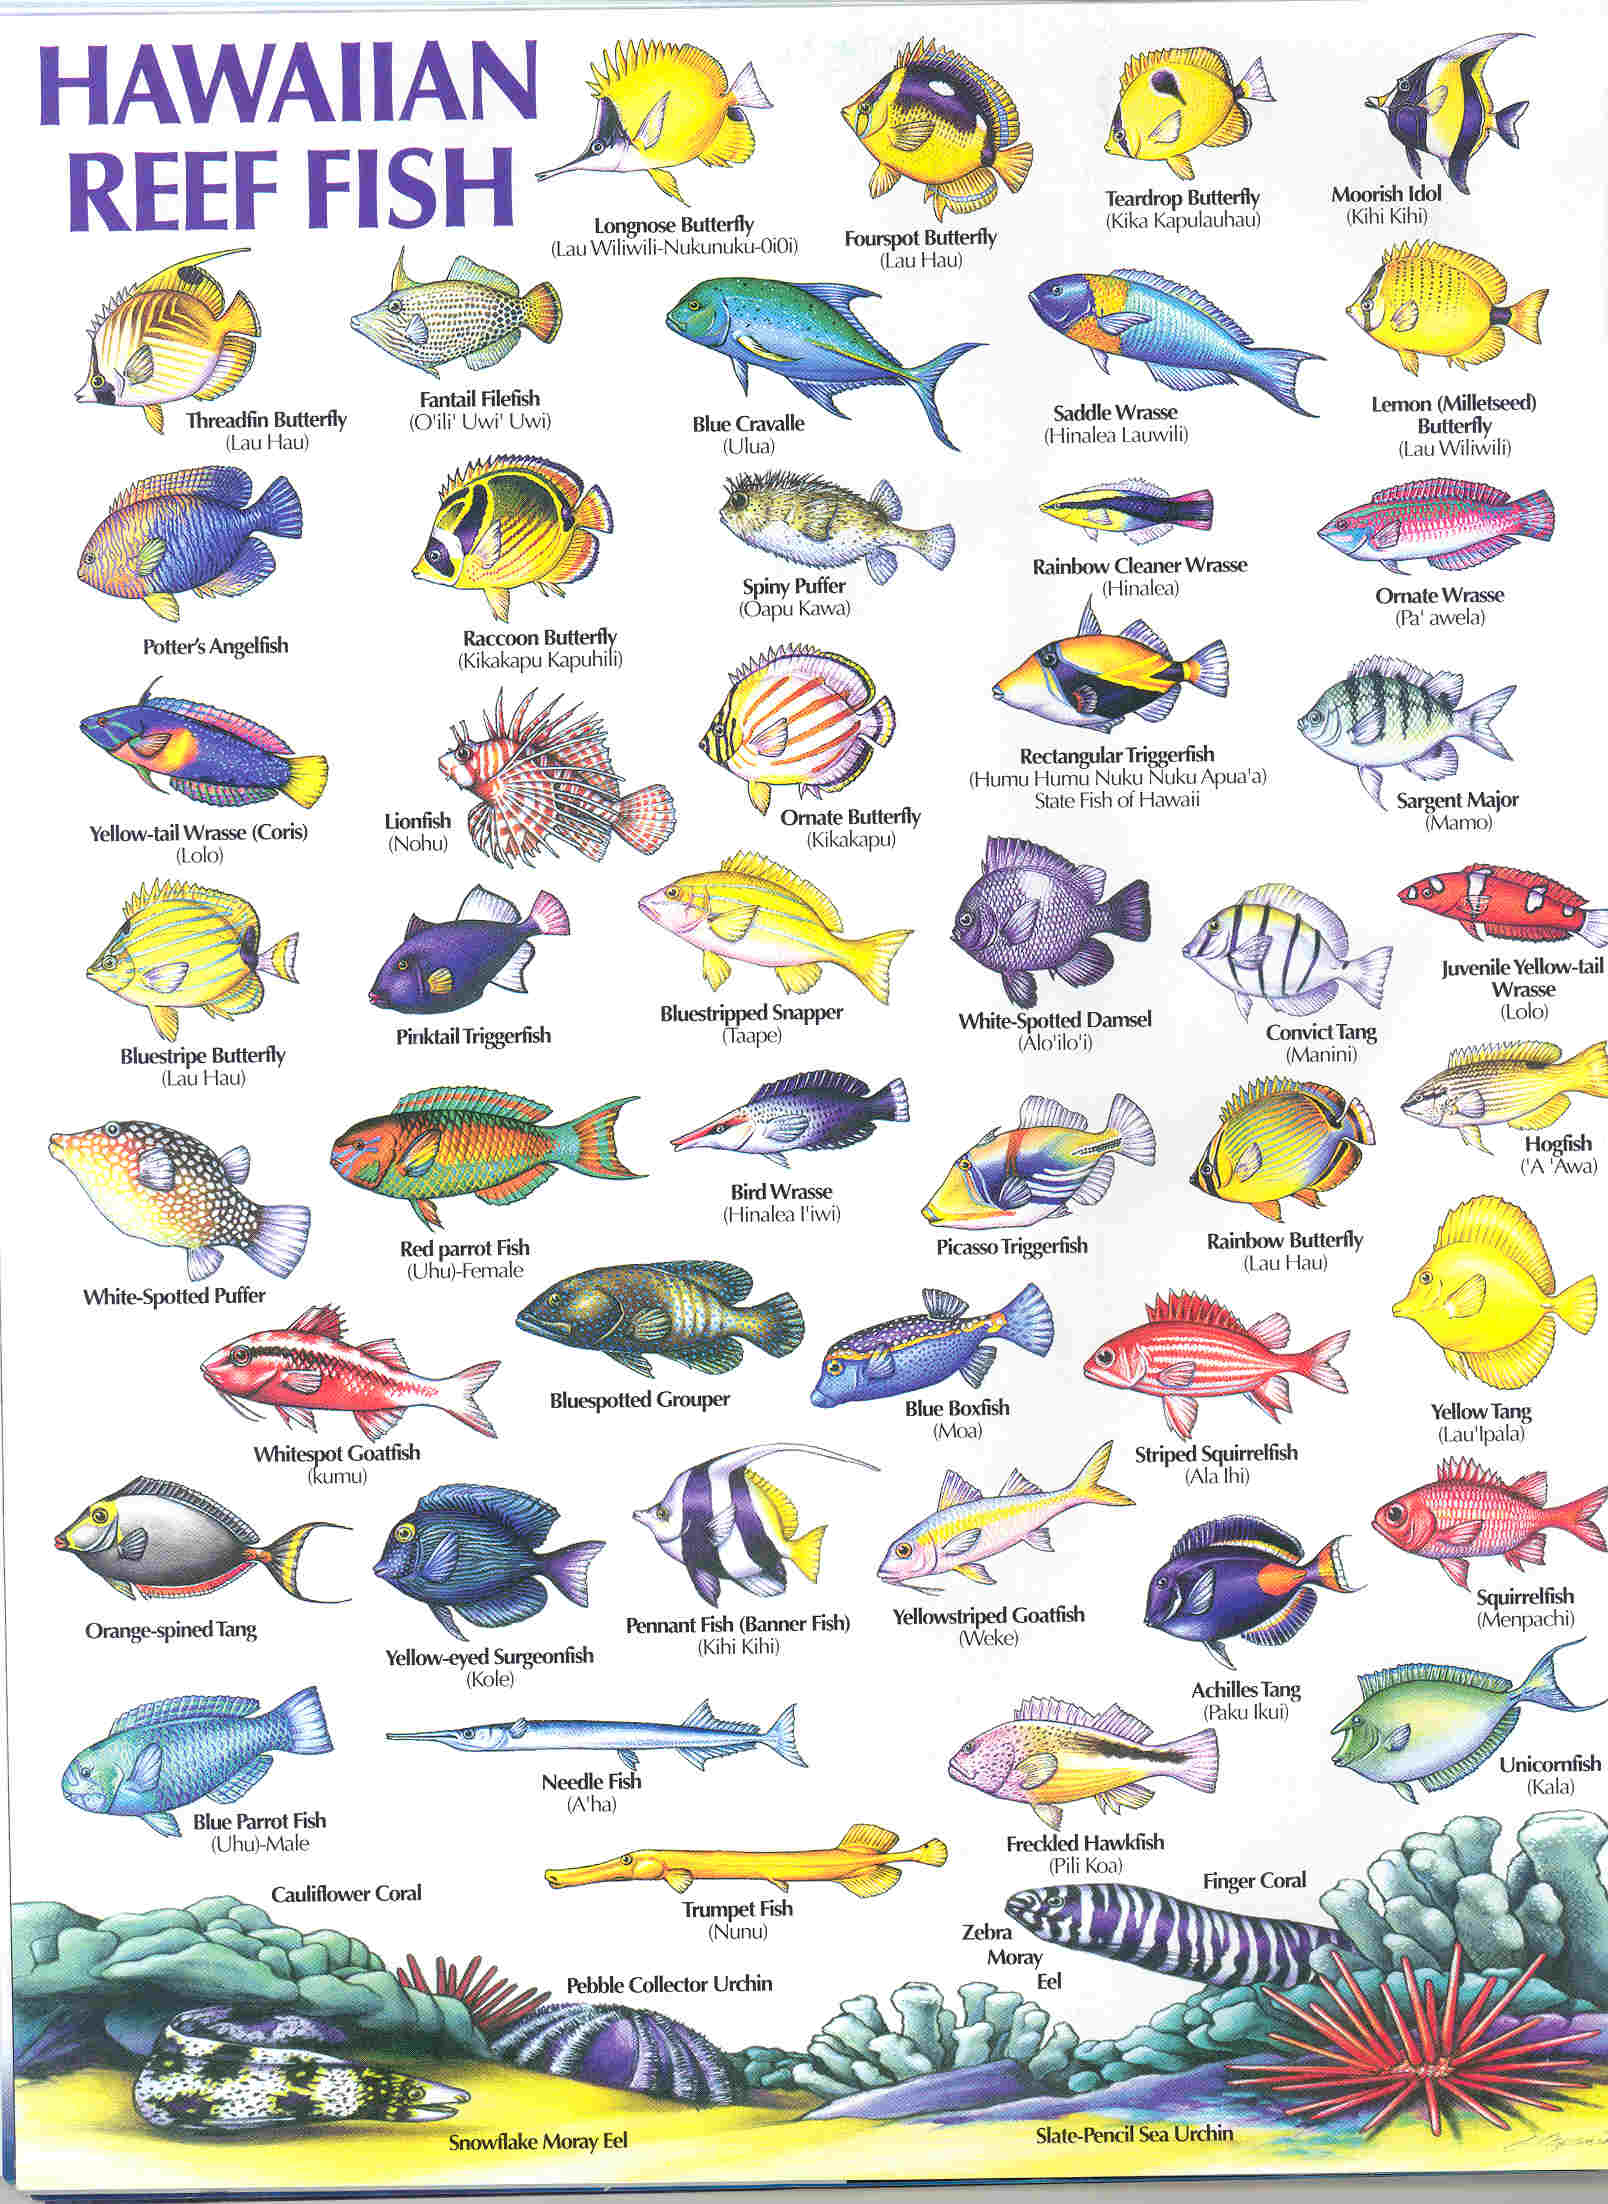 HAWAIIAN REEF FISH GUIDE - Types of fish, Hawaiian names